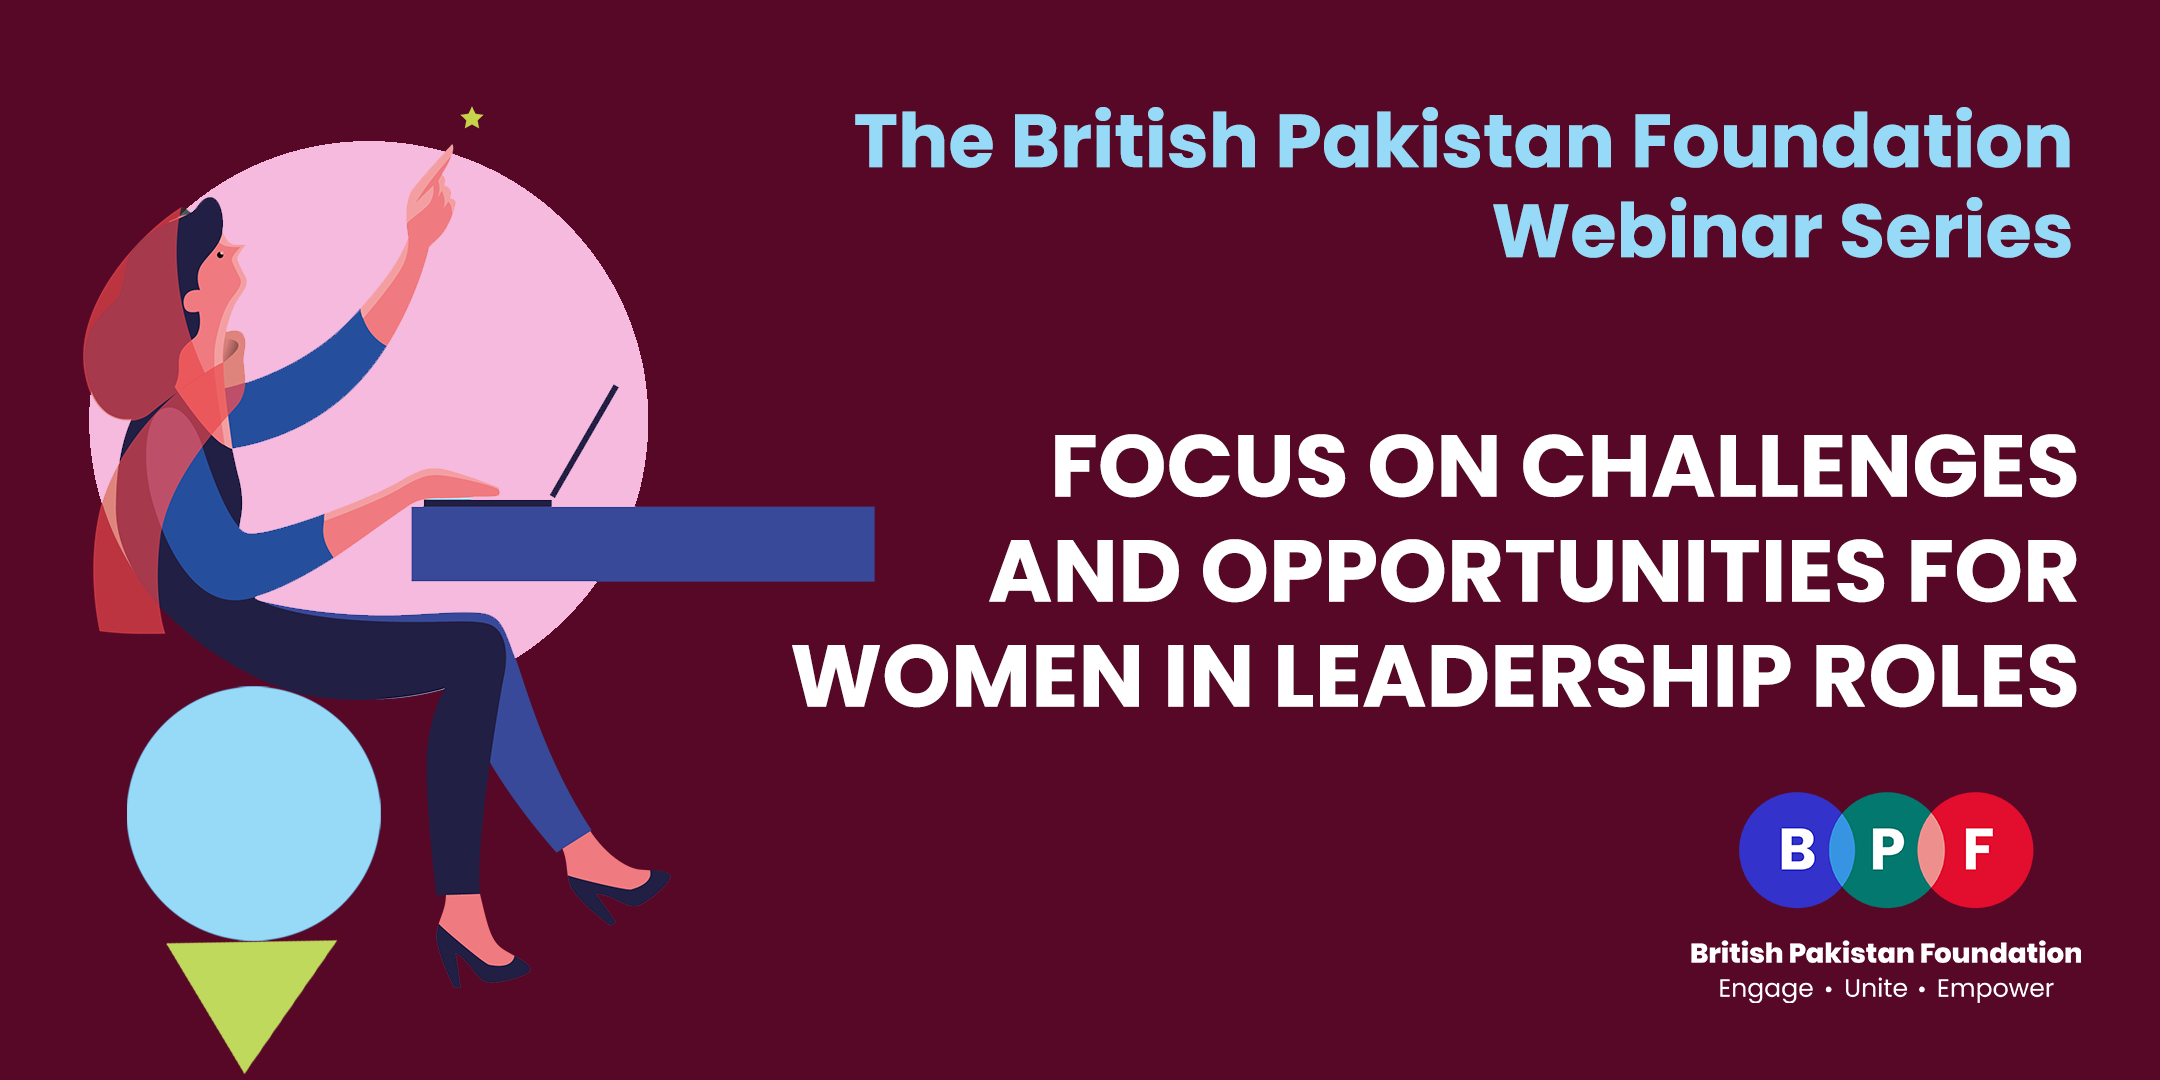 Focus on Challenges and Opportunities for Women in Leadership Roles